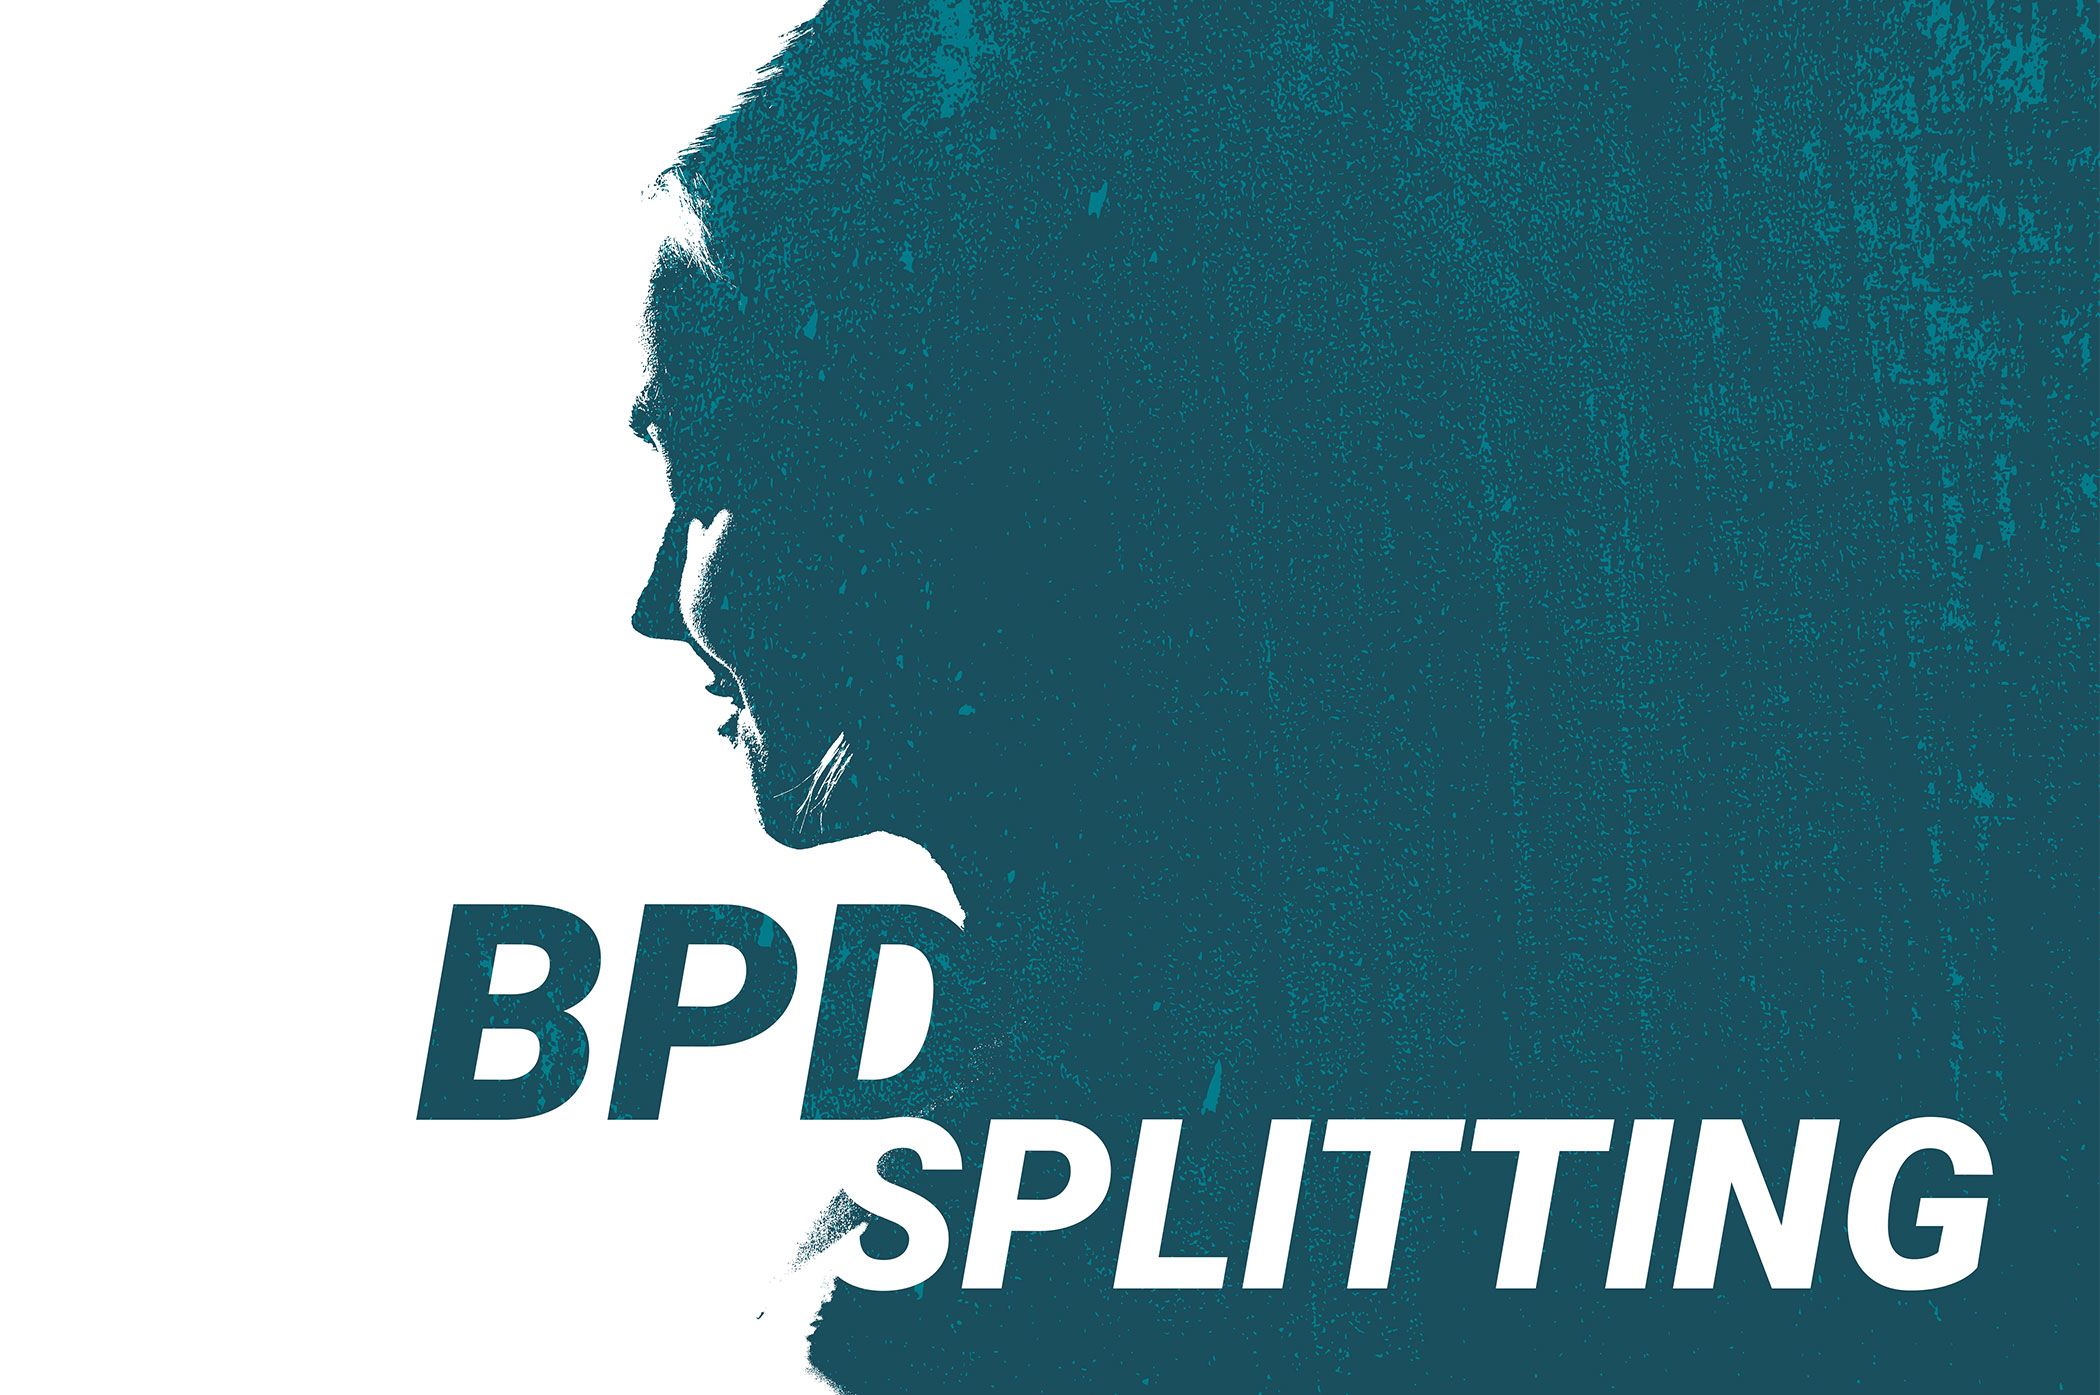 BPD Splitting: What is splitting and how can I get help